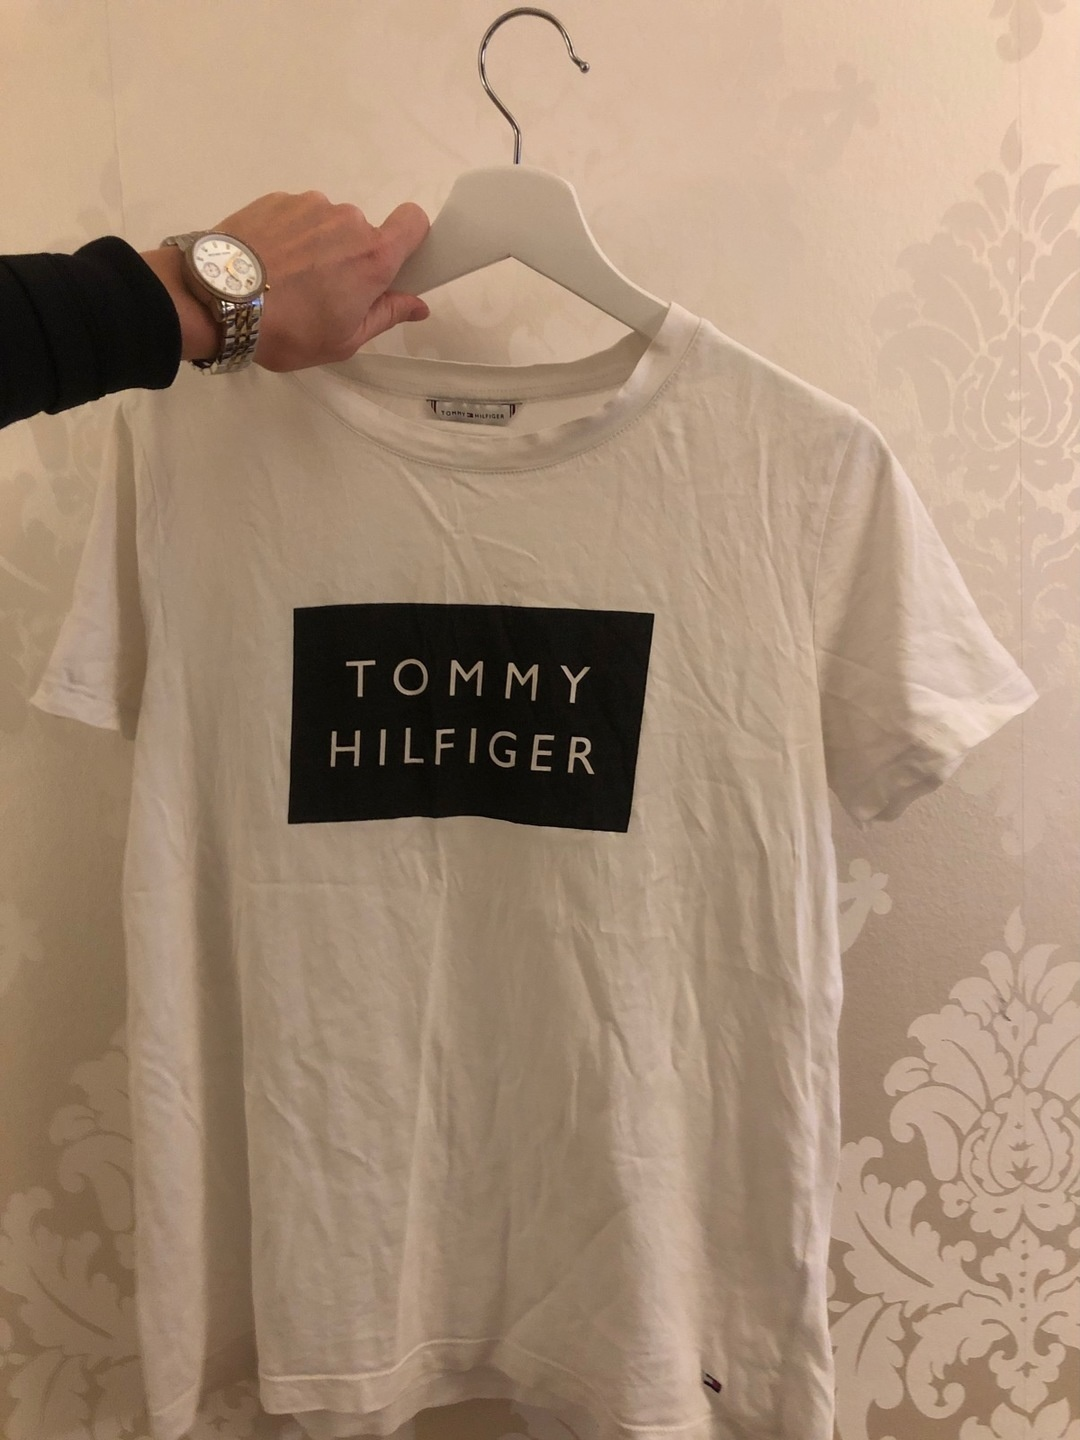 Women's tops & t-shirts - TOMMY HILFIGER photo 1